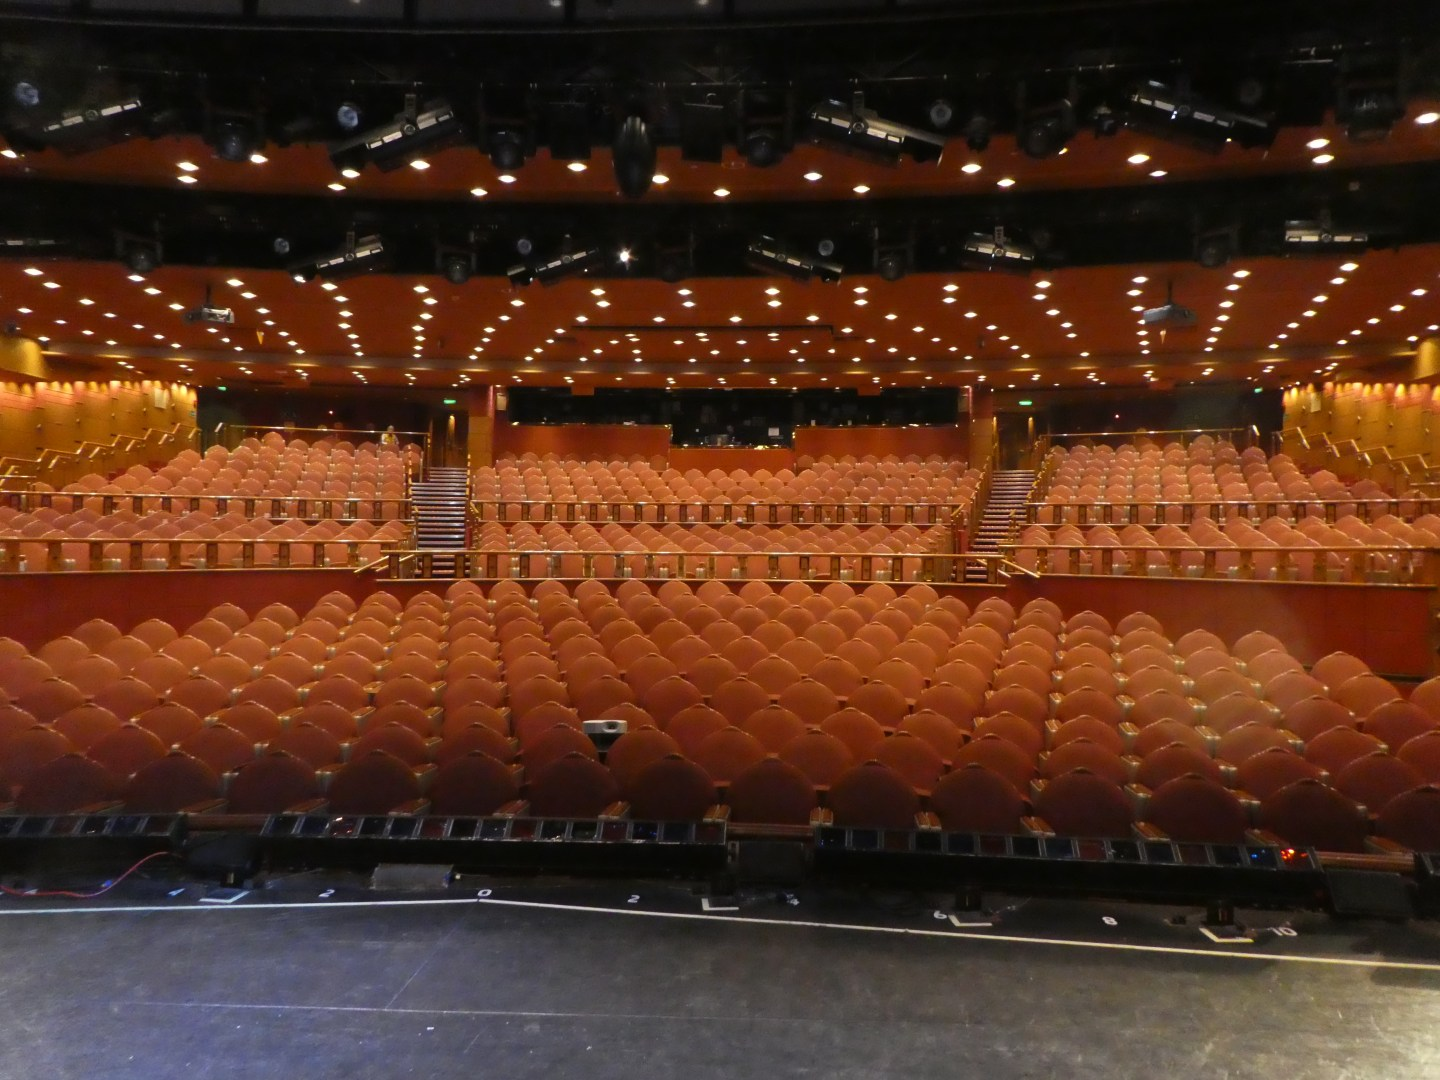 The view from the stage of the Princess Theater